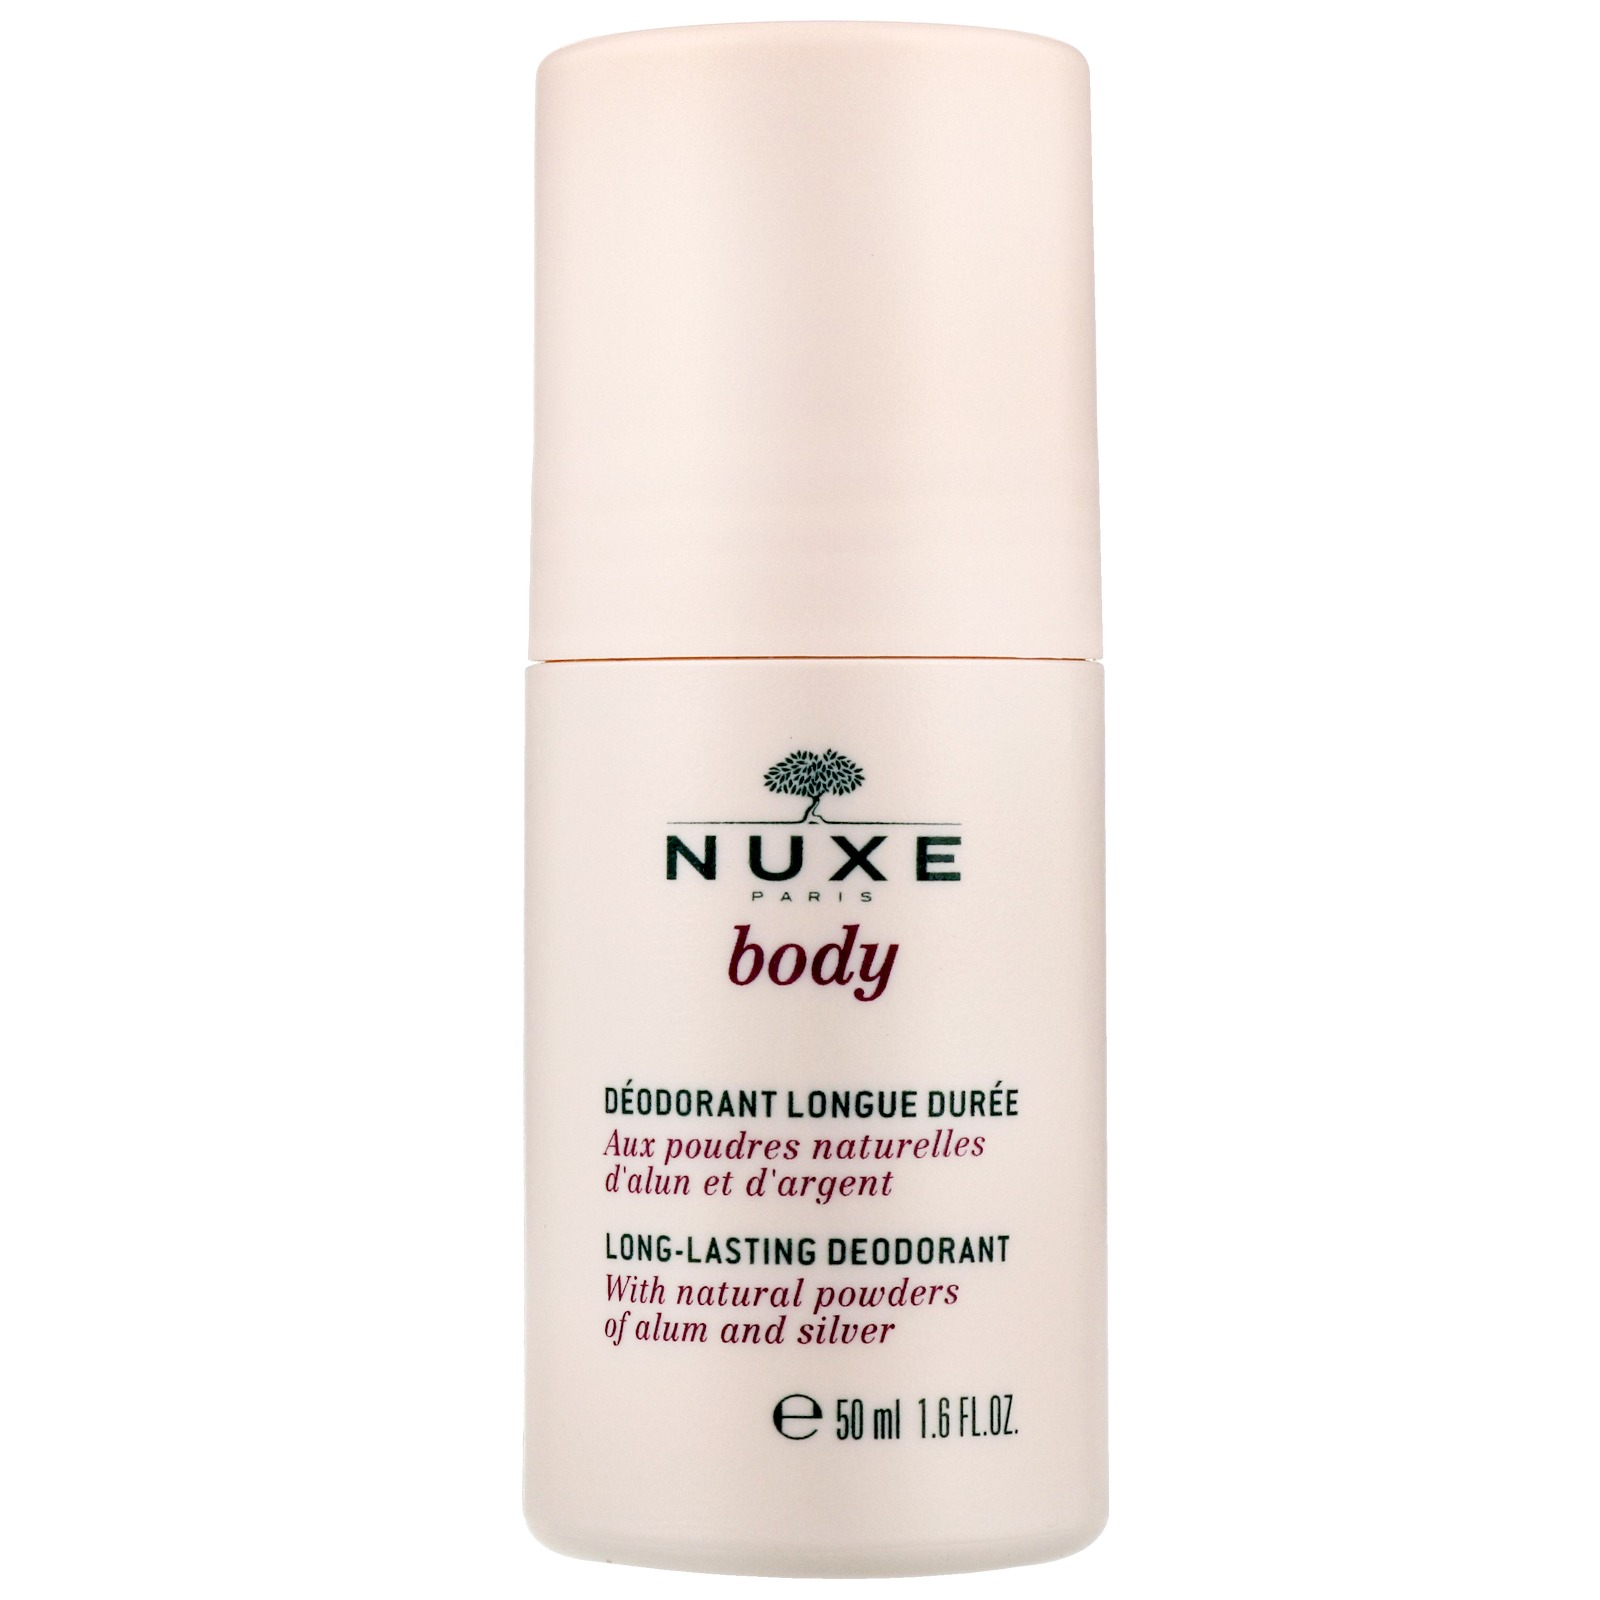 Body Long-Lasting Deodorant by Nuxe, one of the best French natural deodorants.